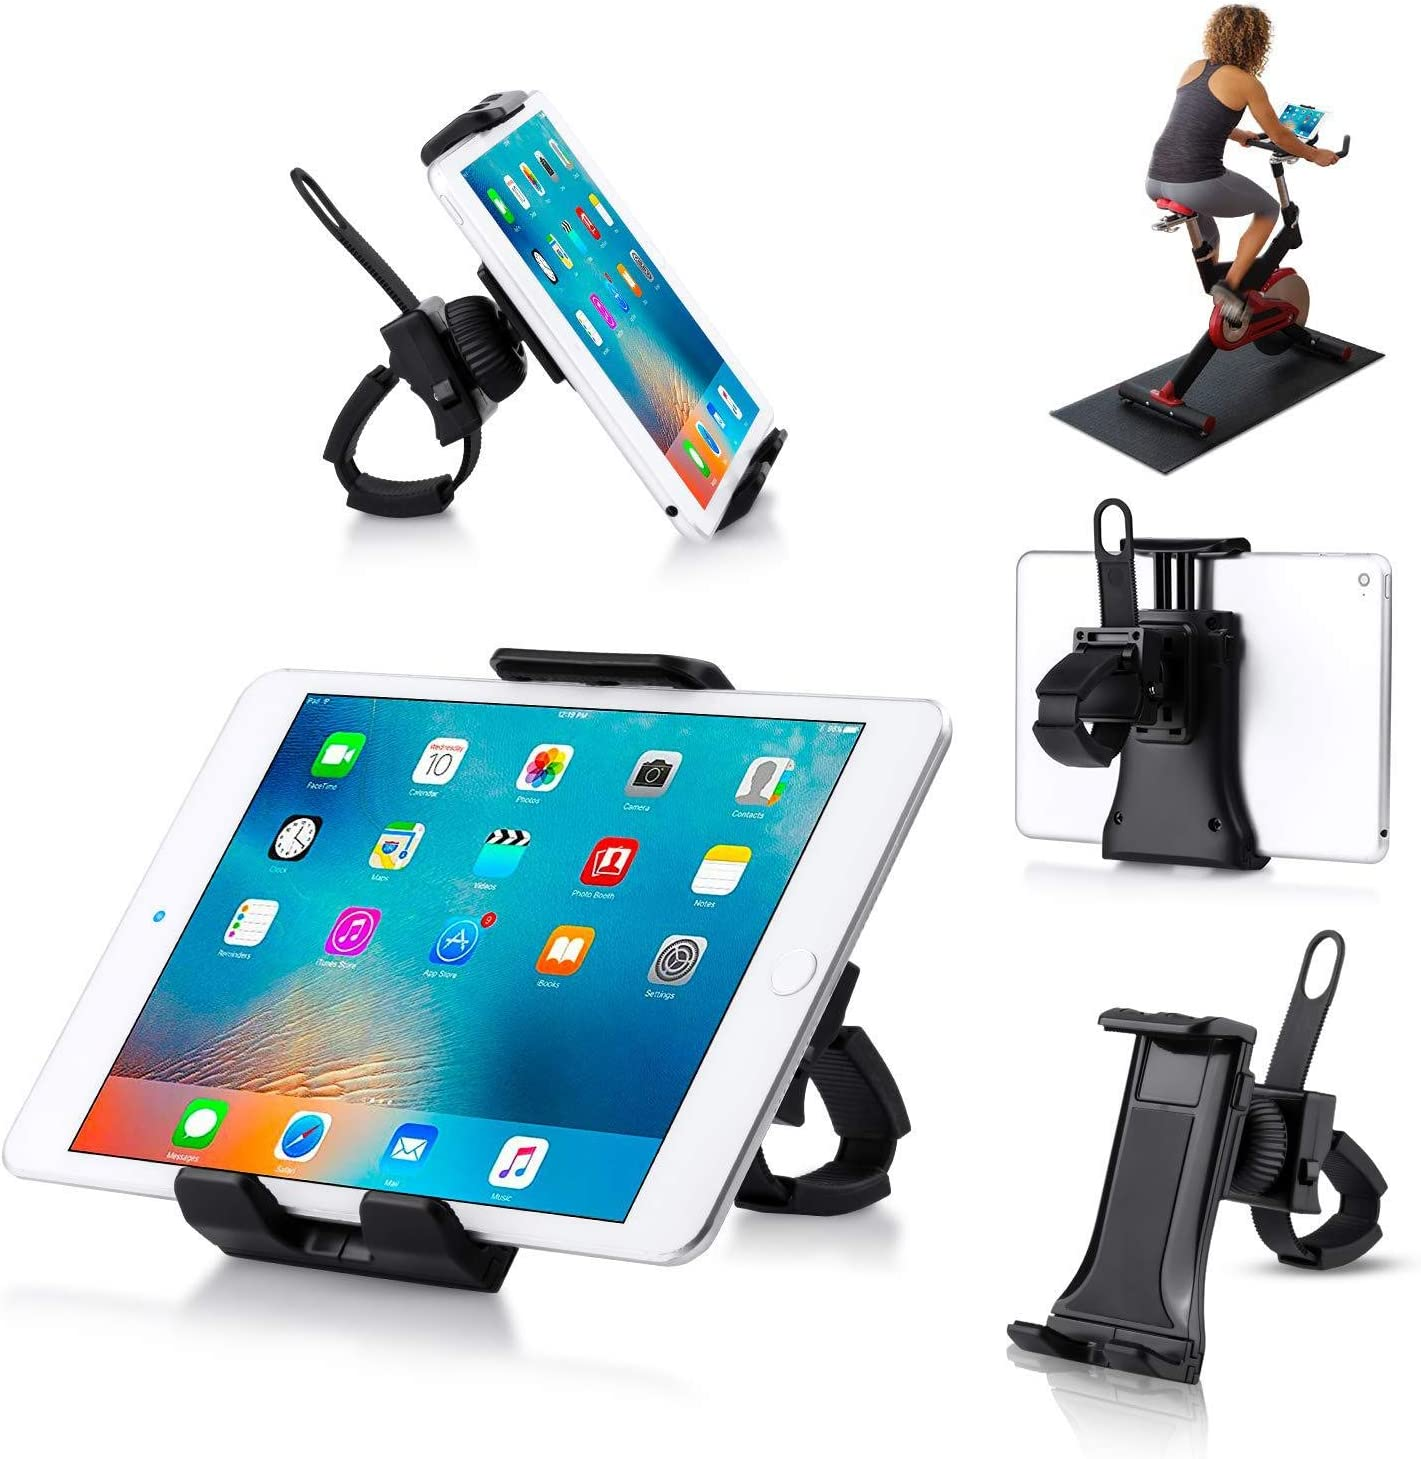 Giosio Universal Treadmill Holder Portable Indoor Cycling Spin Bike Clamp Mount Bicycle Handlebar Bracket Compatible with any Phone & Tablet like iPhone